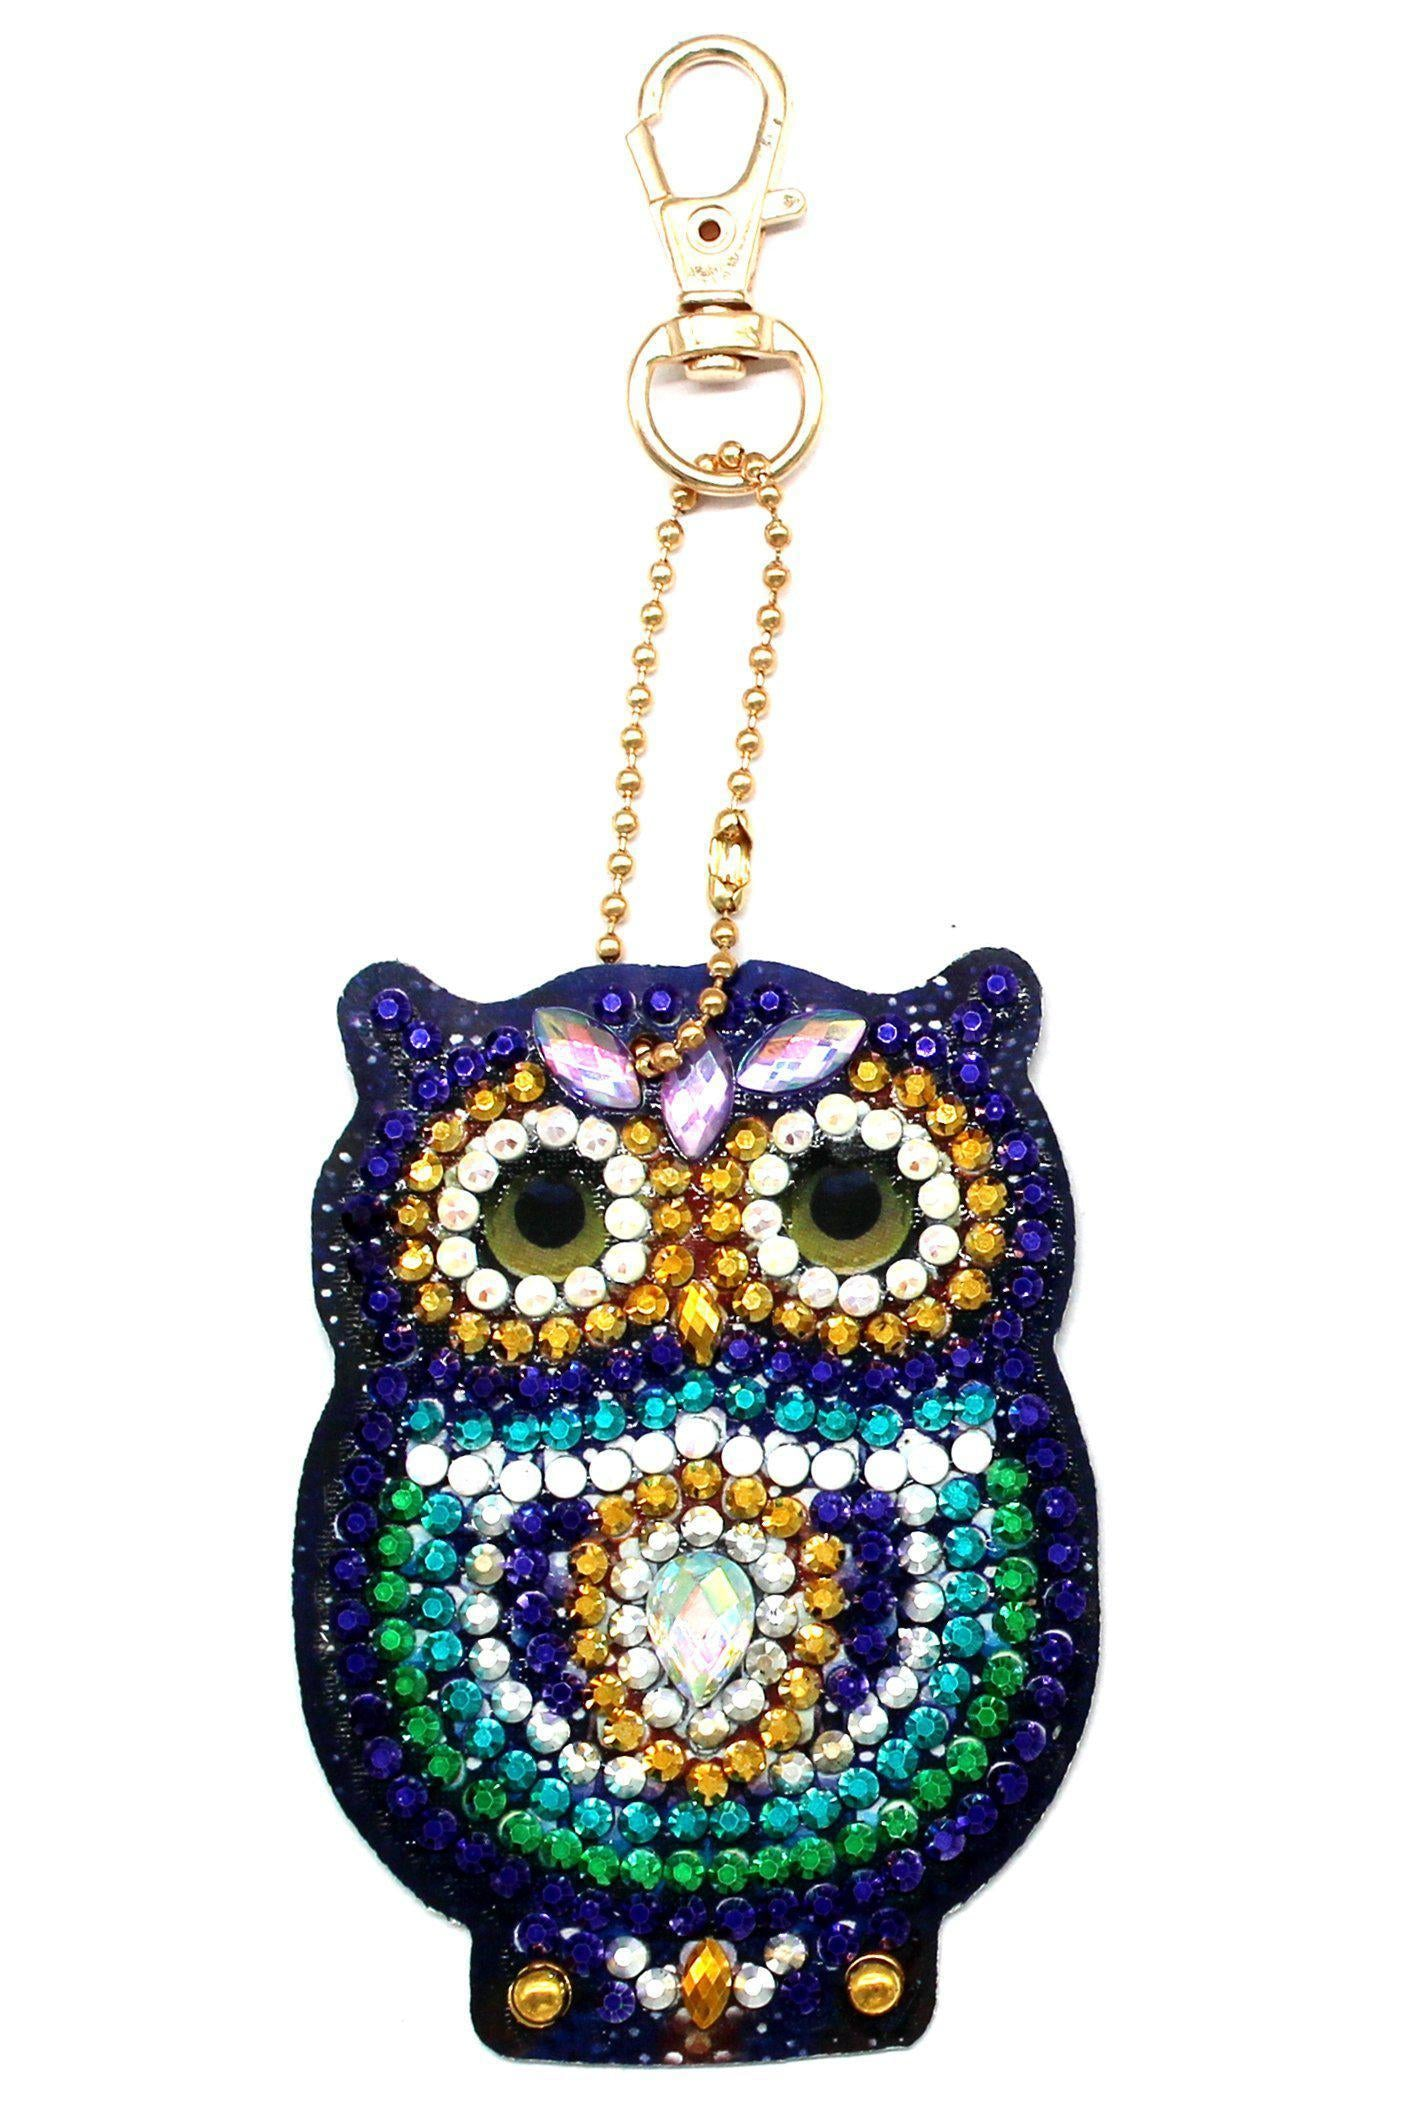 Little Owls - Diamond Key Chains-Key chain-Heartful Diamonds